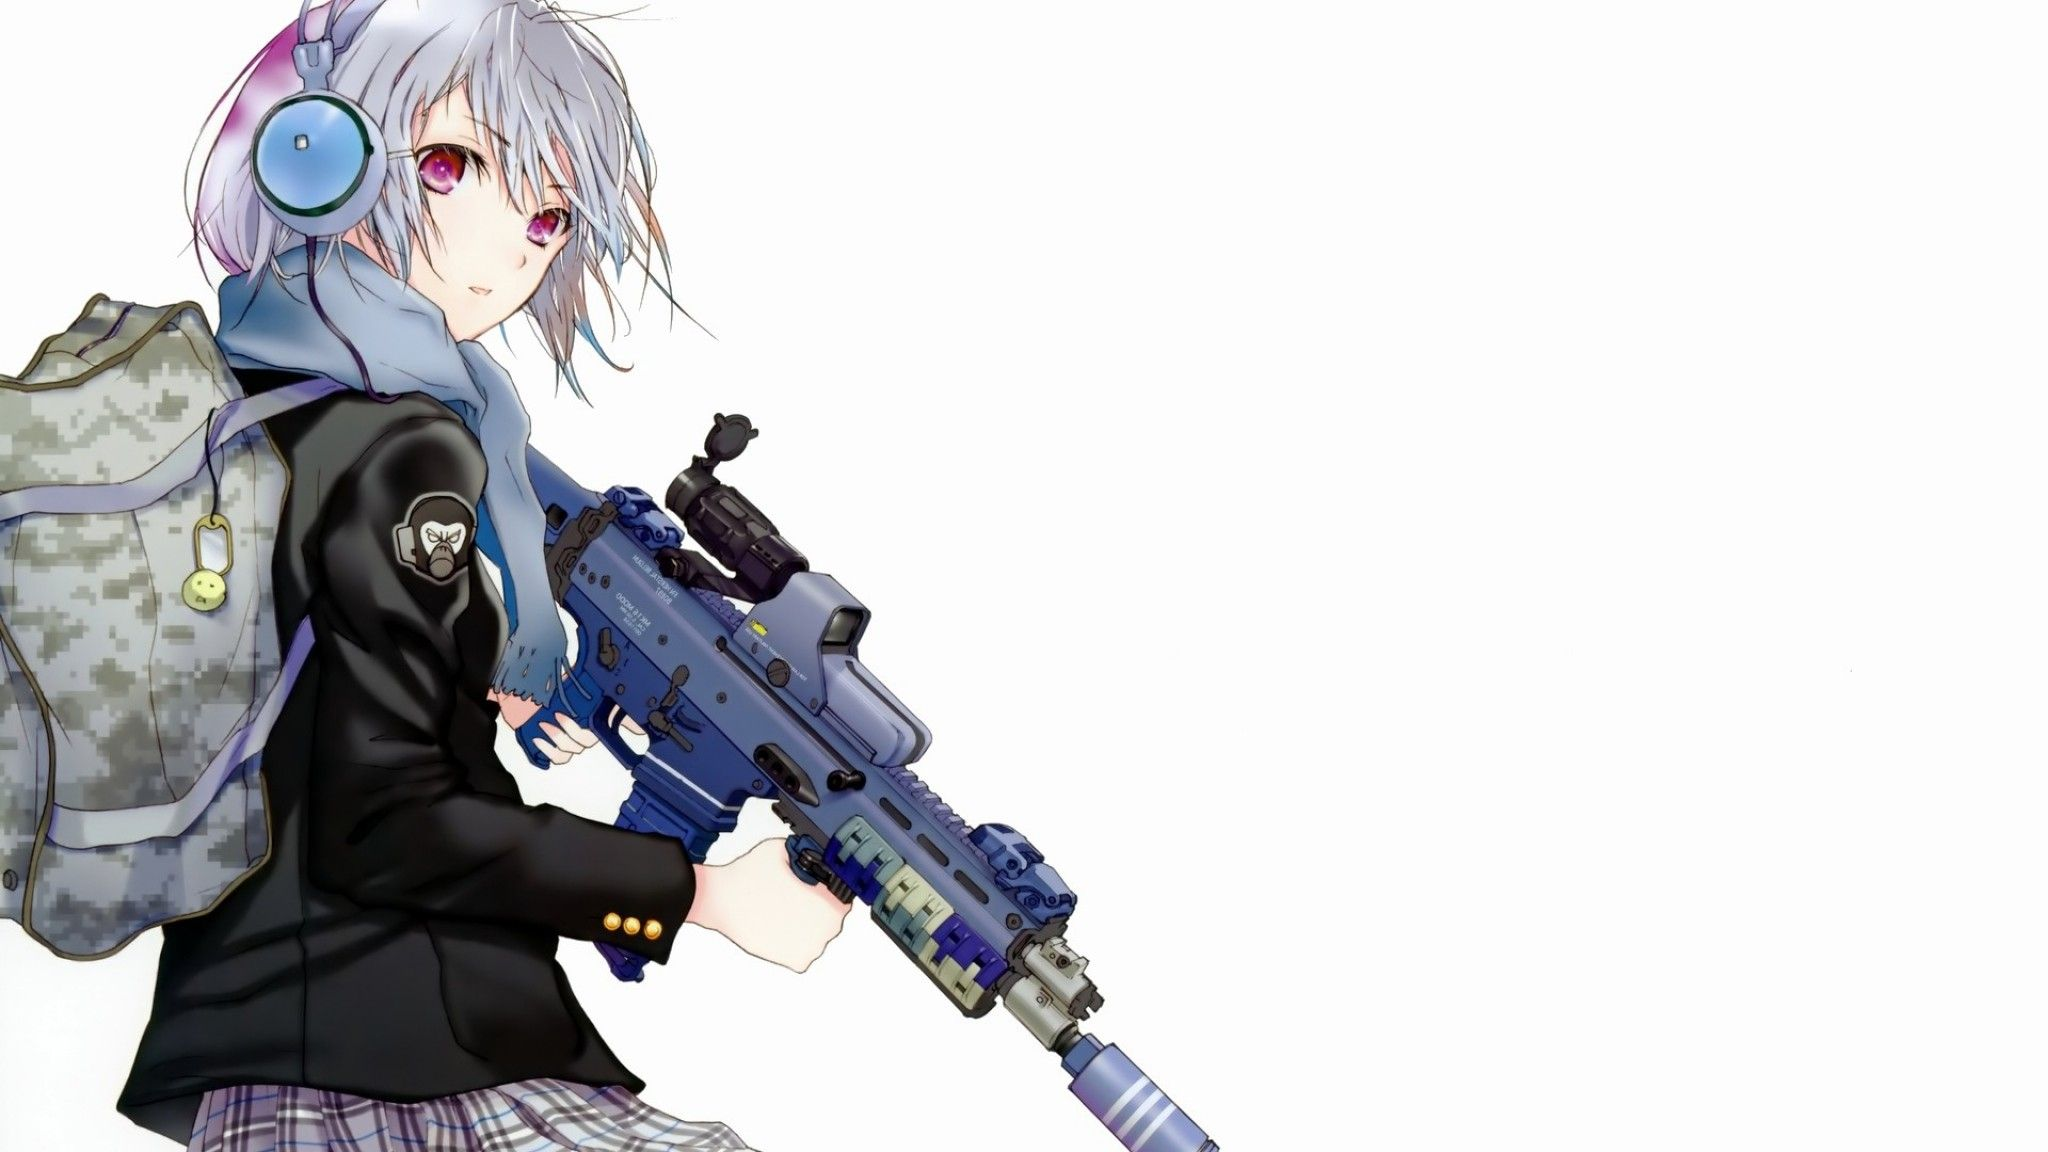 Most Popular 2048x1152 Anime Wallpaper 2048x1152 For Hd